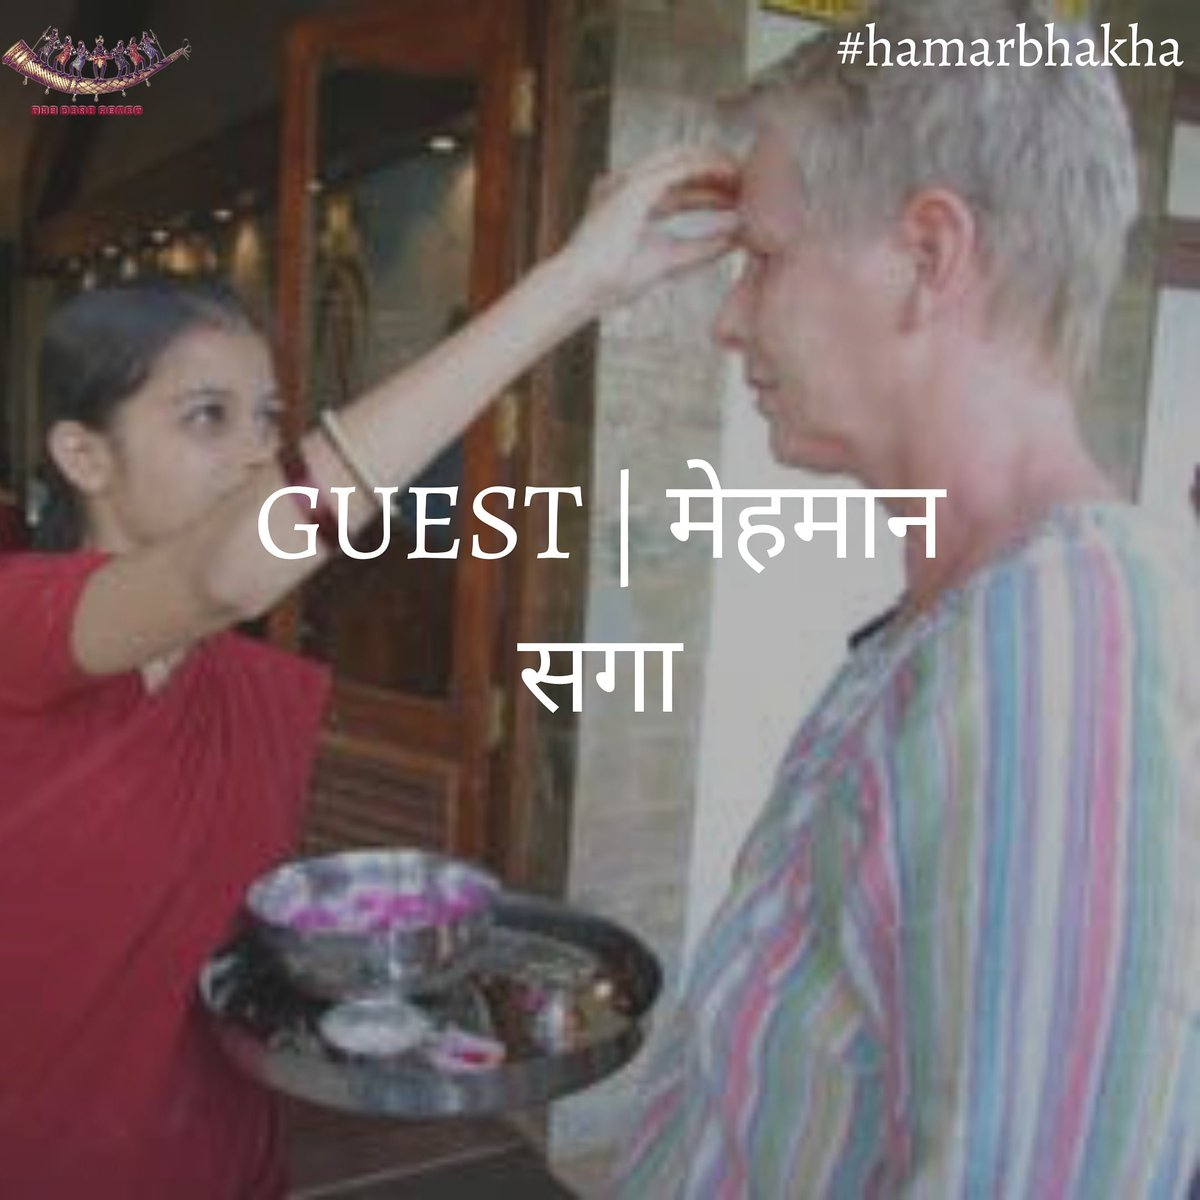 WORD OF THE  DAY  GUEST| मेहमान । सगा  #chhattishgarh #chhattisgarh😍 #chhattisgarhtourism #wordoftheday #chhattisgarhiya #language #rice #chawal #thedesiheart #hamarbhakha https://t.co/Z9EF97zE1o